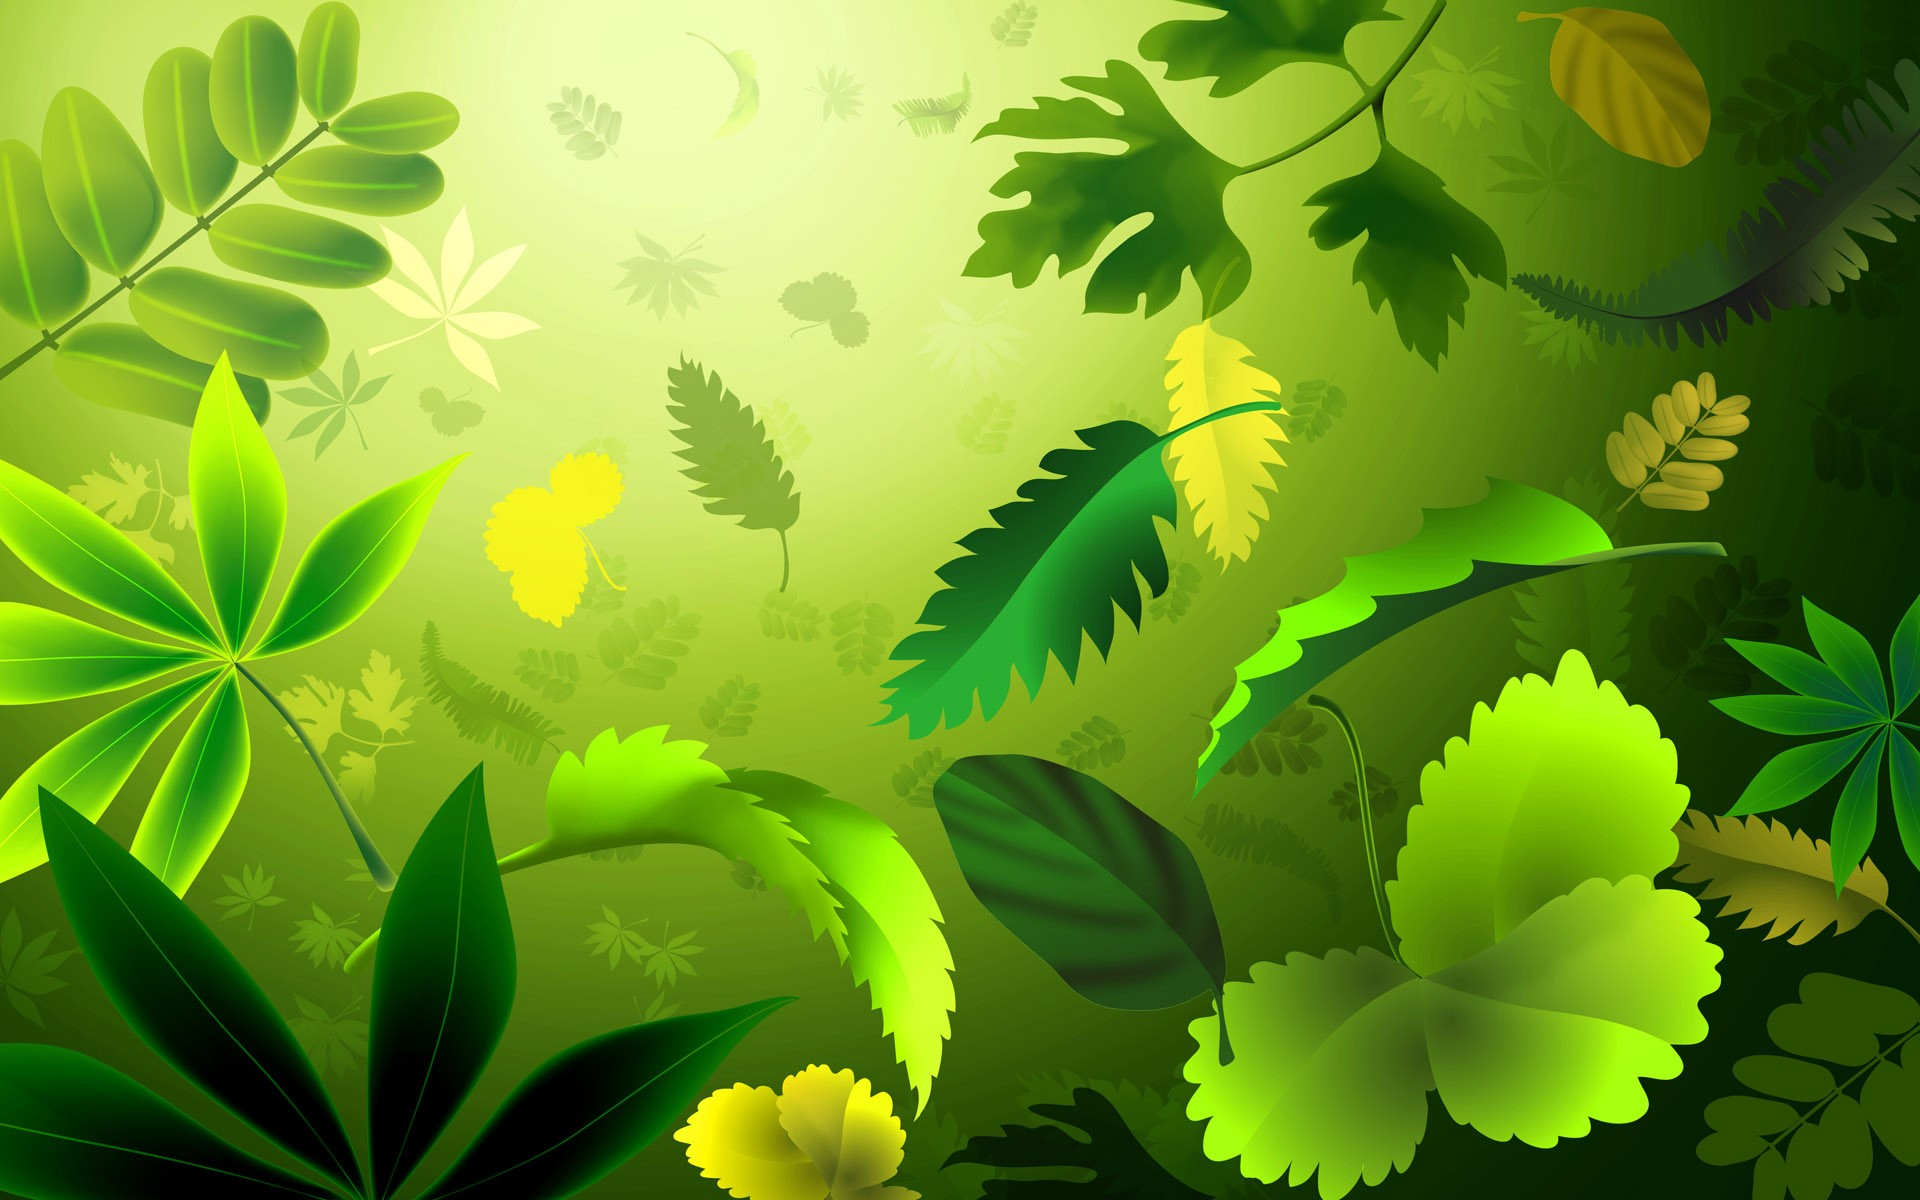 Green Full Hd Wallpaper Download Cool Images Download - Nature Background Clip Art , HD Wallpaper & Backgrounds